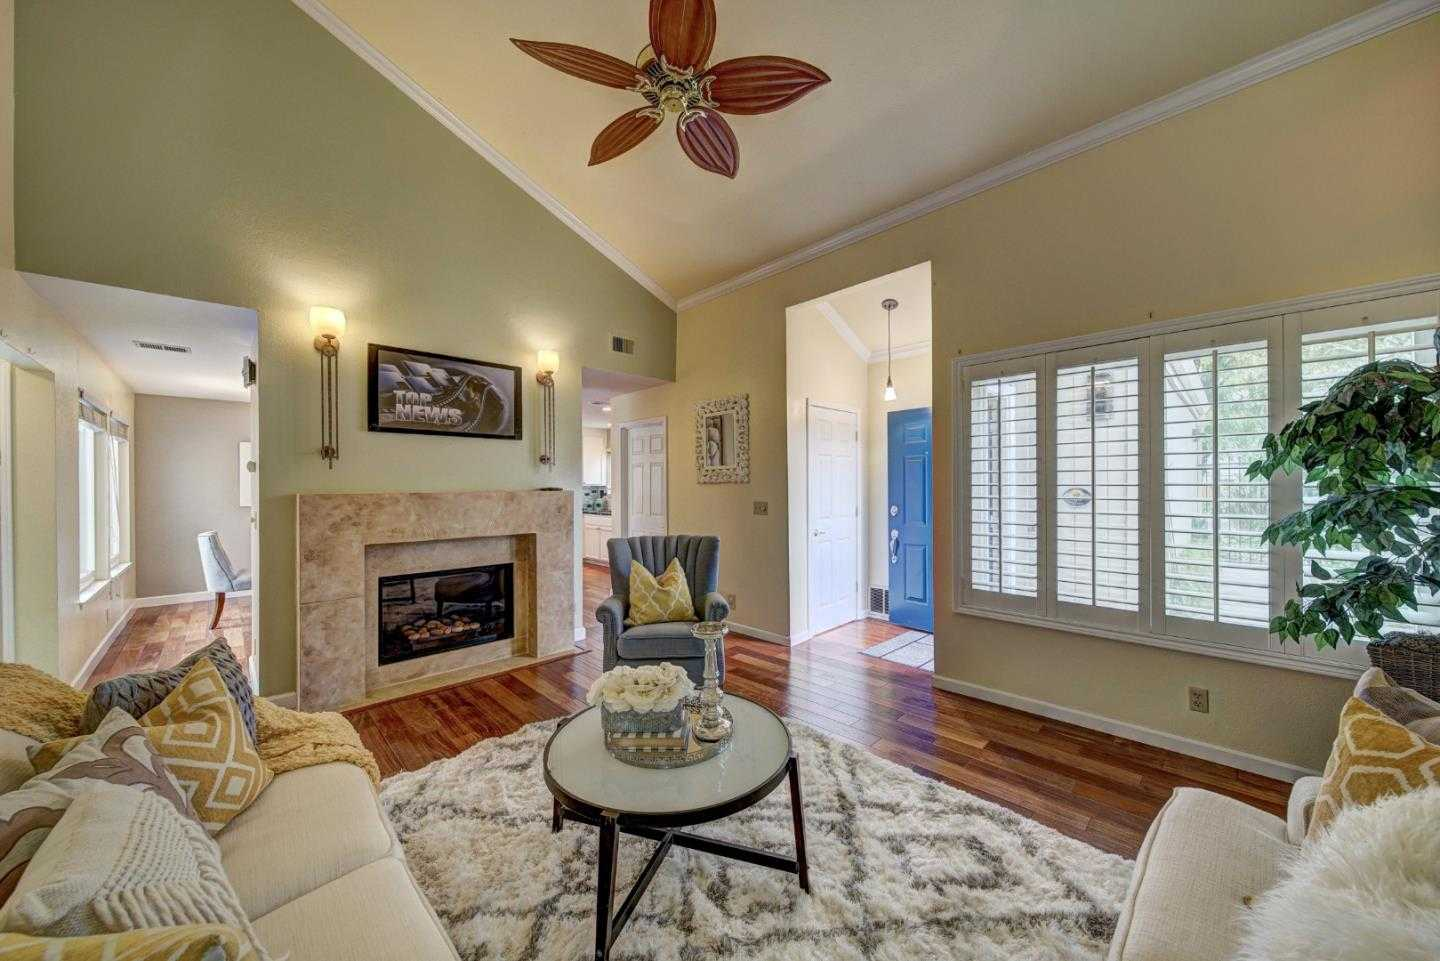 $1,380,000 - 2Br/2Ba -  for Sale in Cupertino